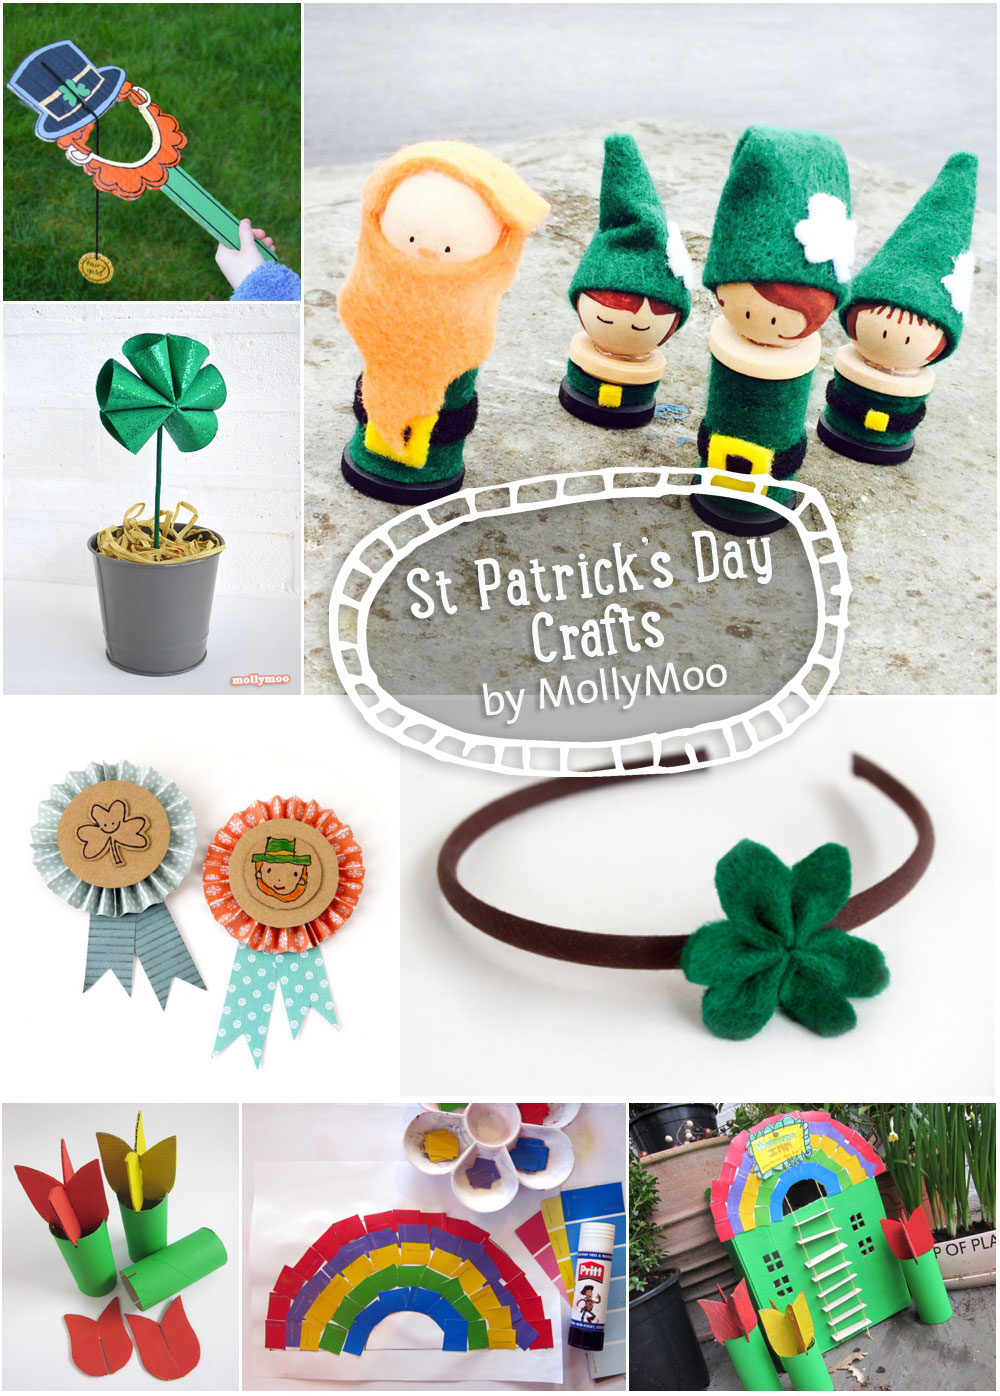 St Patrick's Day Crafts by Michelle McInerney of MollyMoo